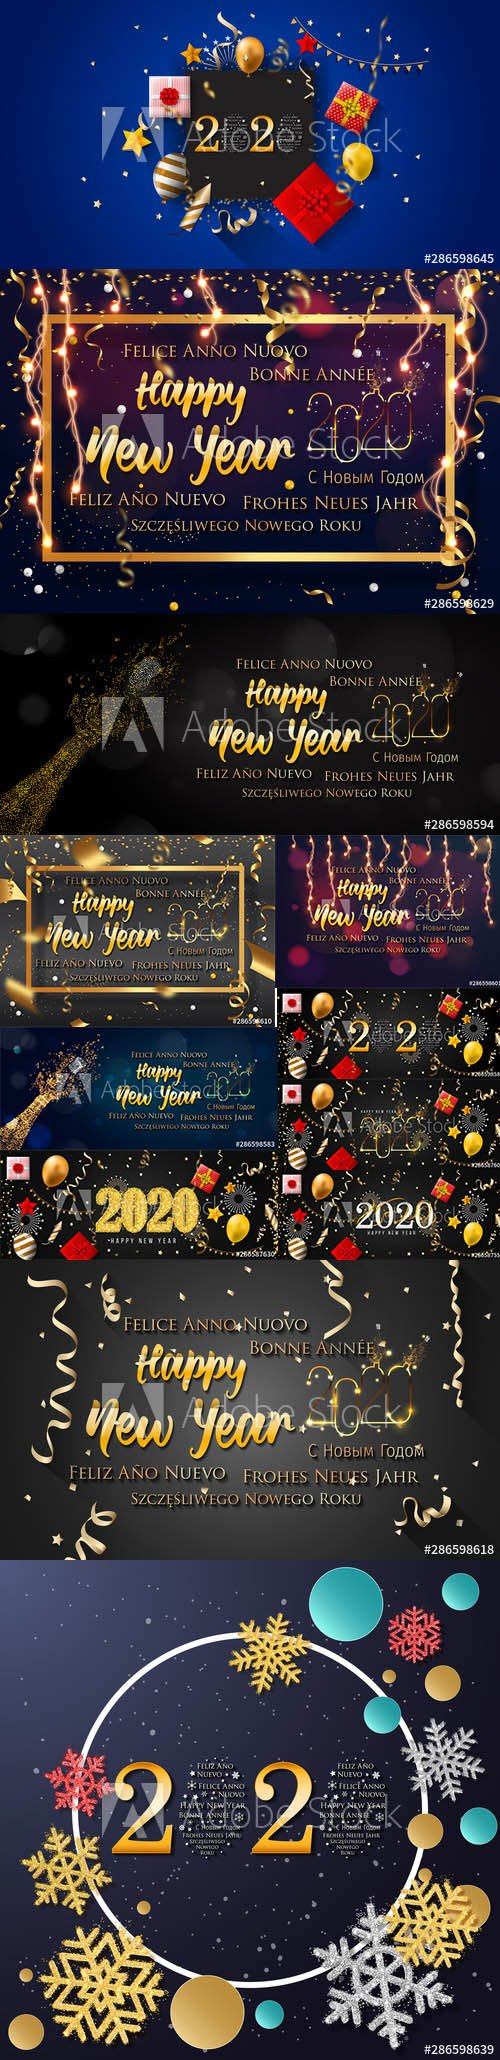 2020 Happy New Year Greeting Card and New Year AI Background vol.5